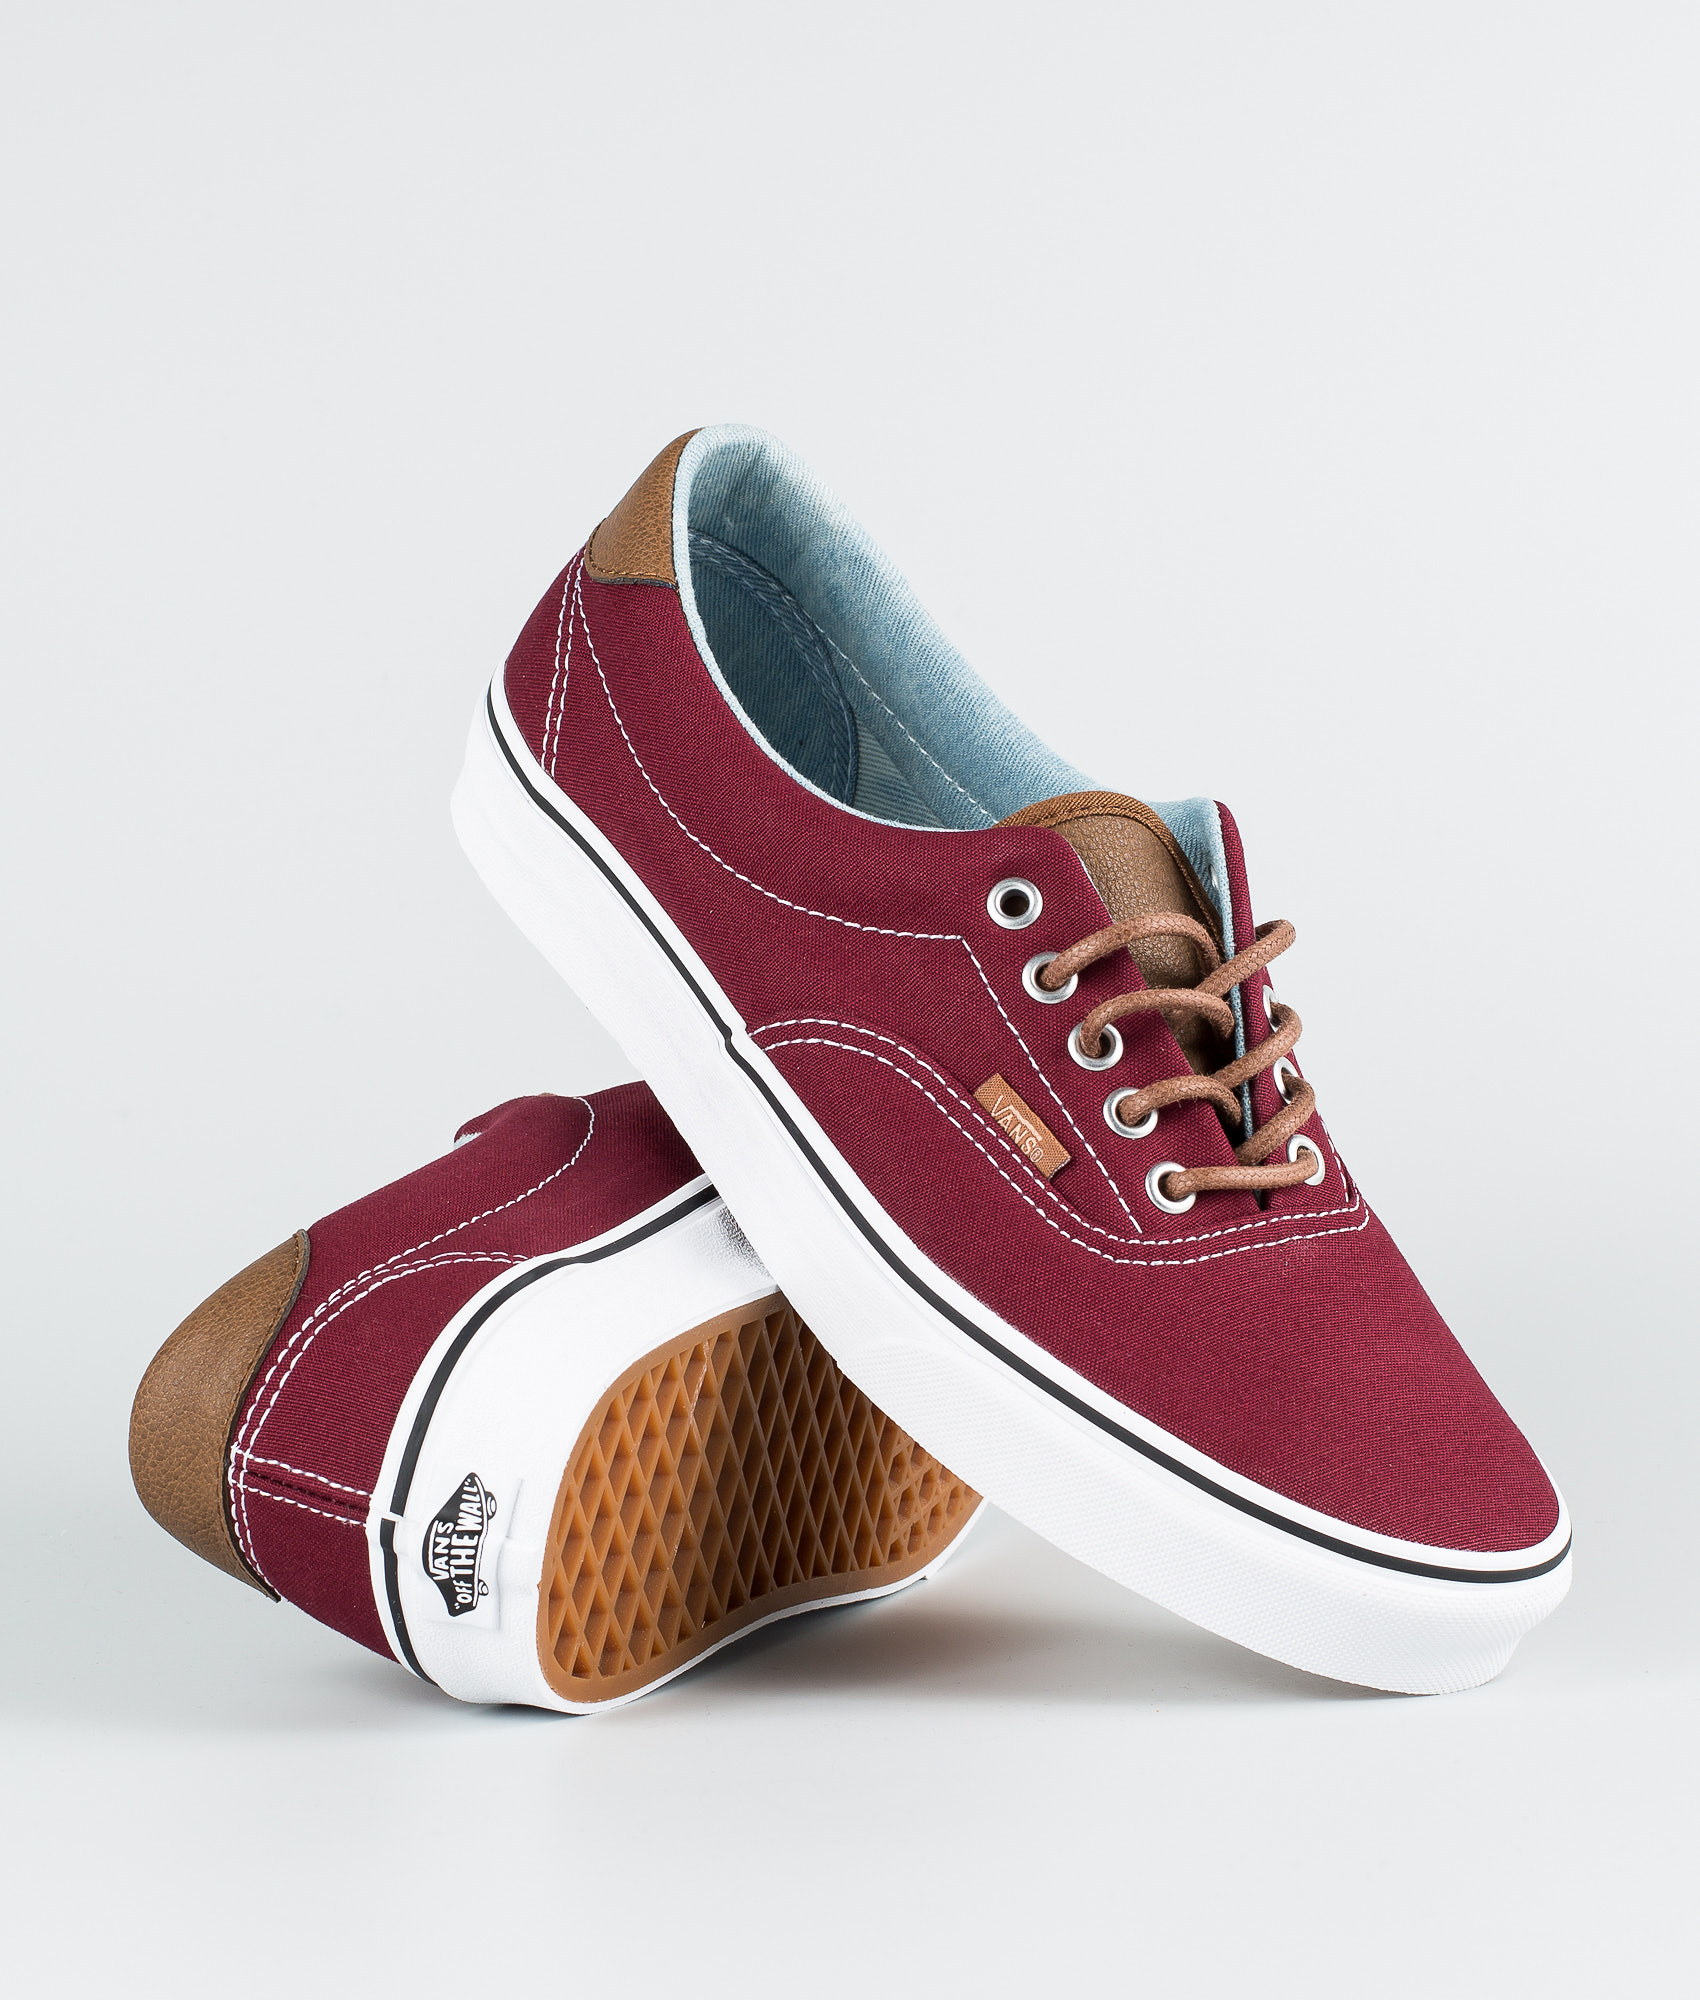 8dfff3fb79e2 Vans Era 59 Shoes (C L) Port Royale Acid De - Ridestore.com